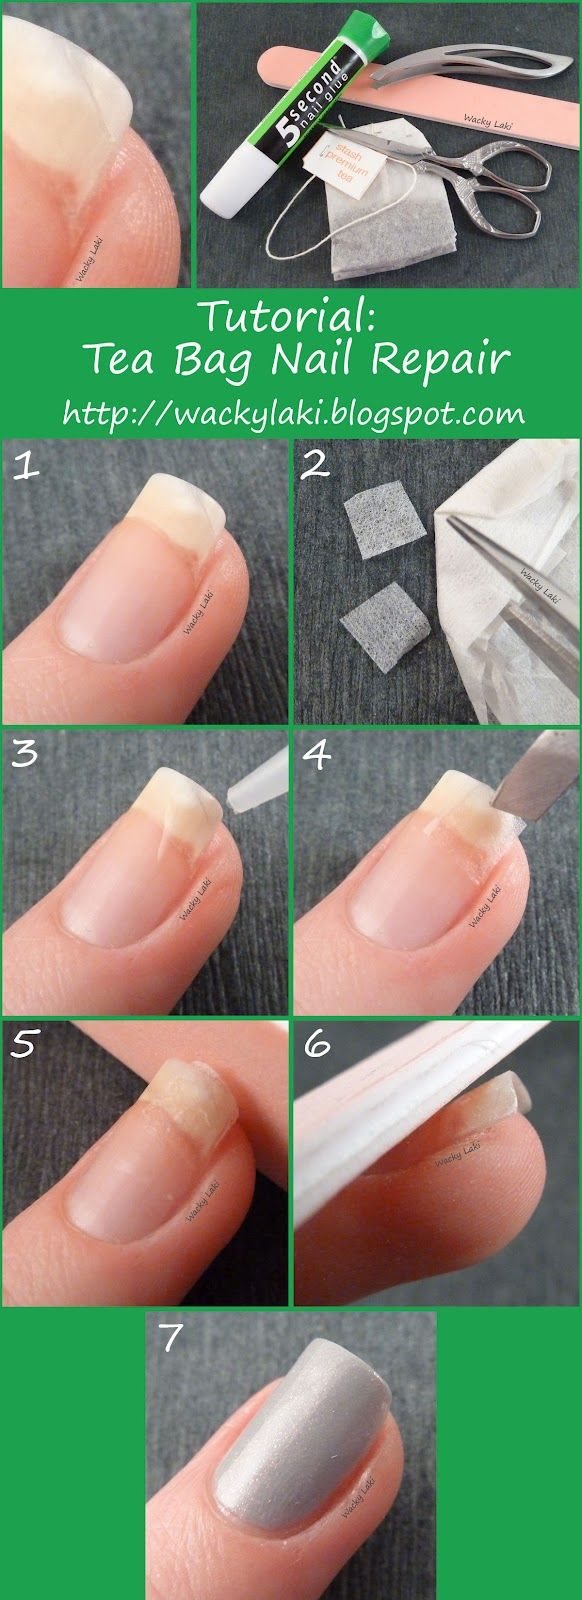 Wacky Laki: Tea Bag Nail Repair.  Might be doing this tonight to a nail split I've had since May!